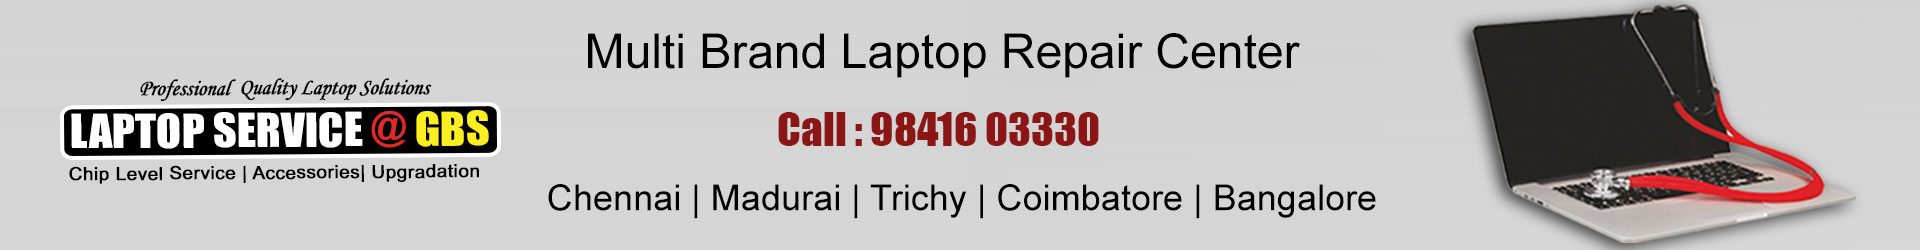 laptop service center in kk nagar chennai